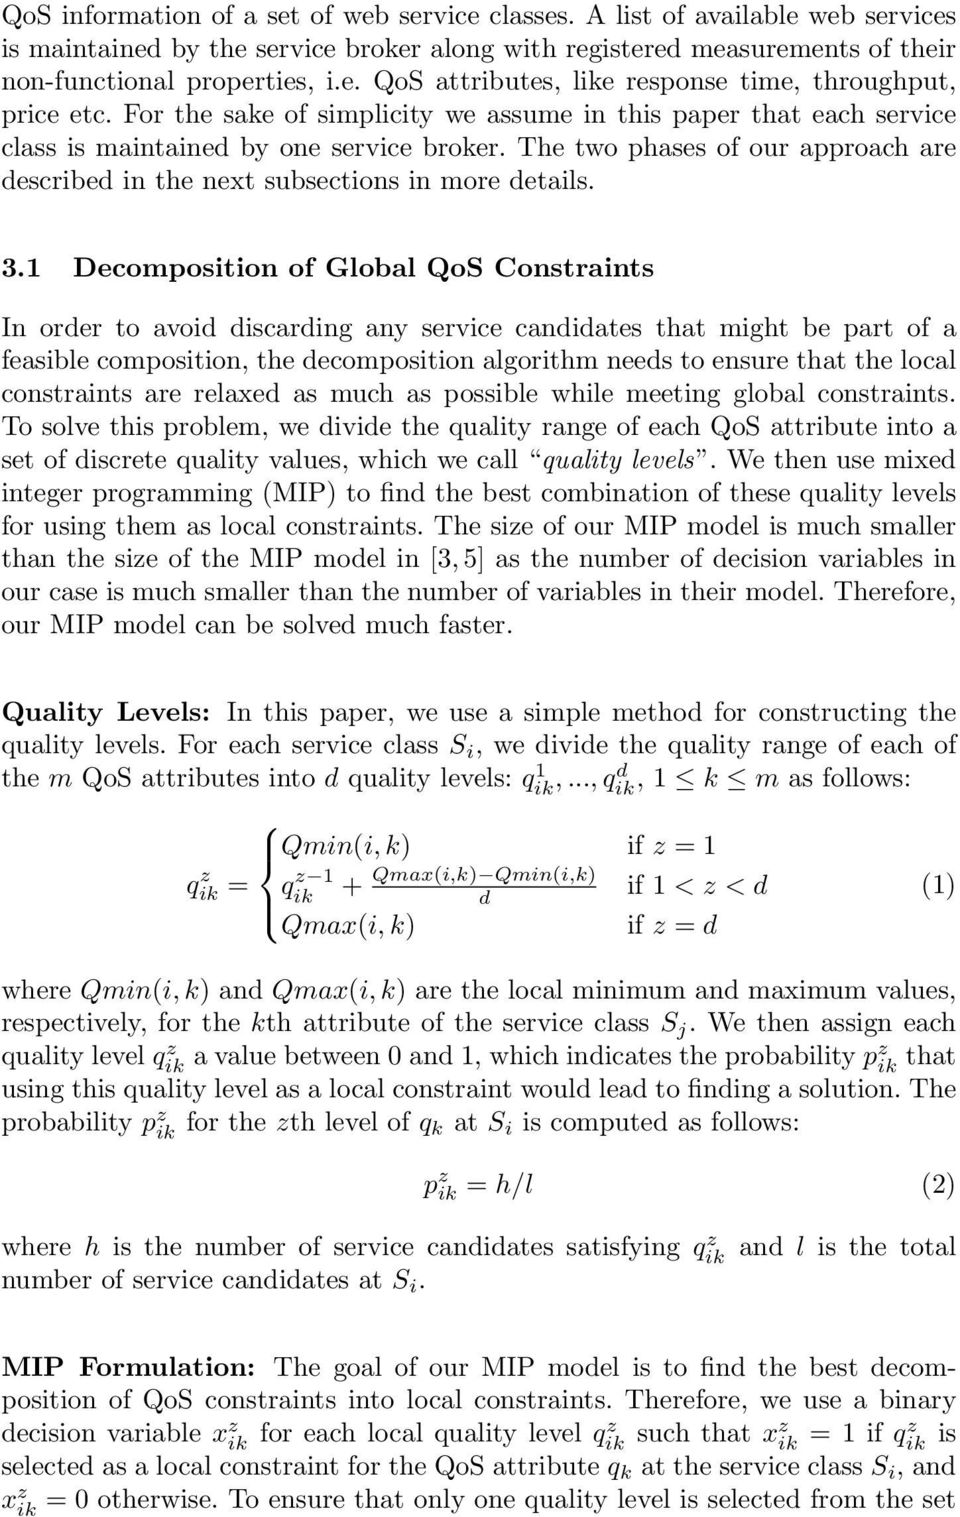 1 Decomposition of Global QoS Constraints In order to avoid discarding any service candidates that might be part of a feasible composition, the decomposition algorithm needs to ensure that the local